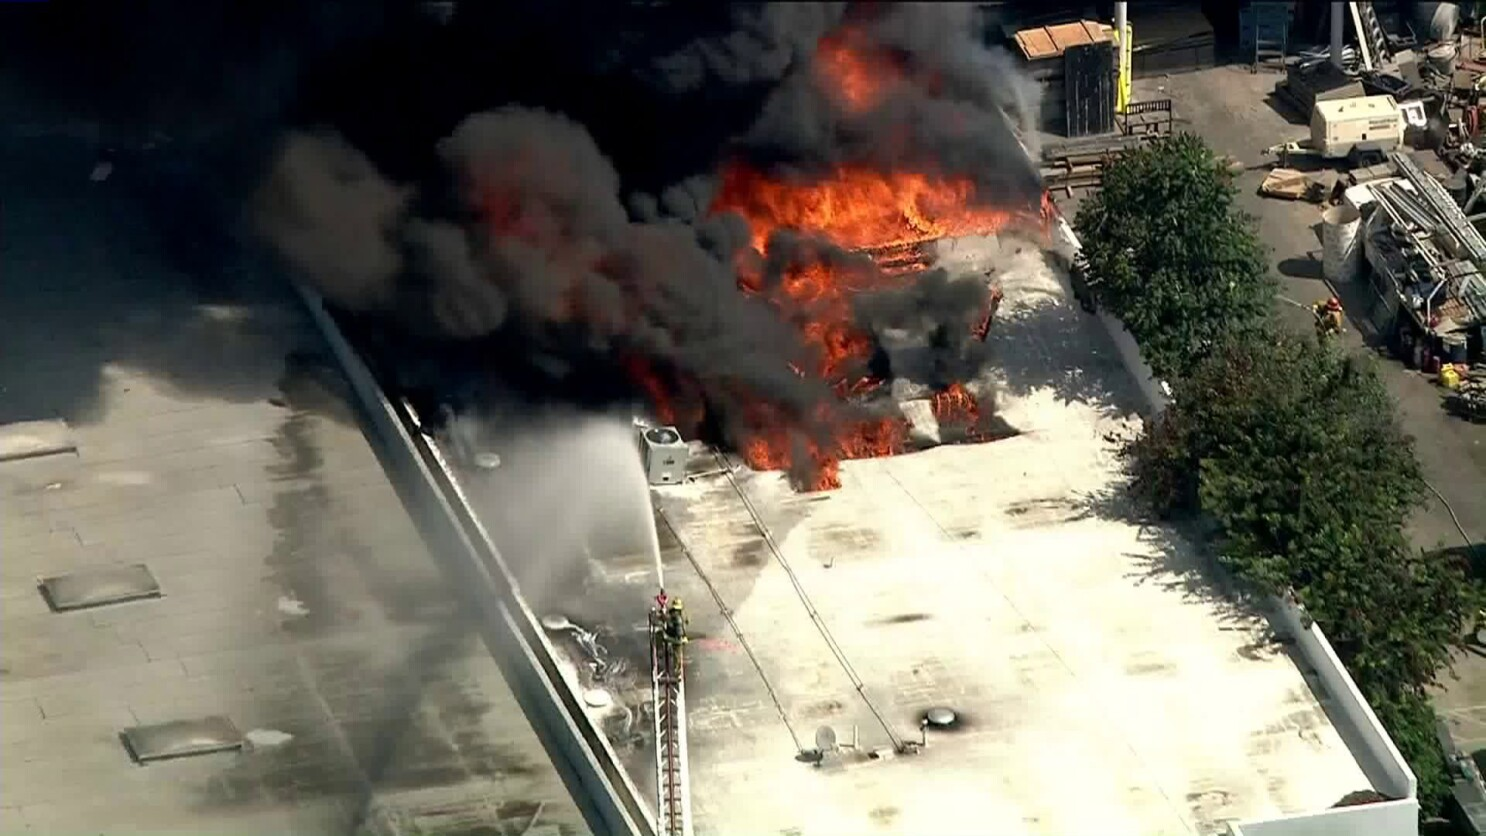 Massive fire burns commercial building in Paramount